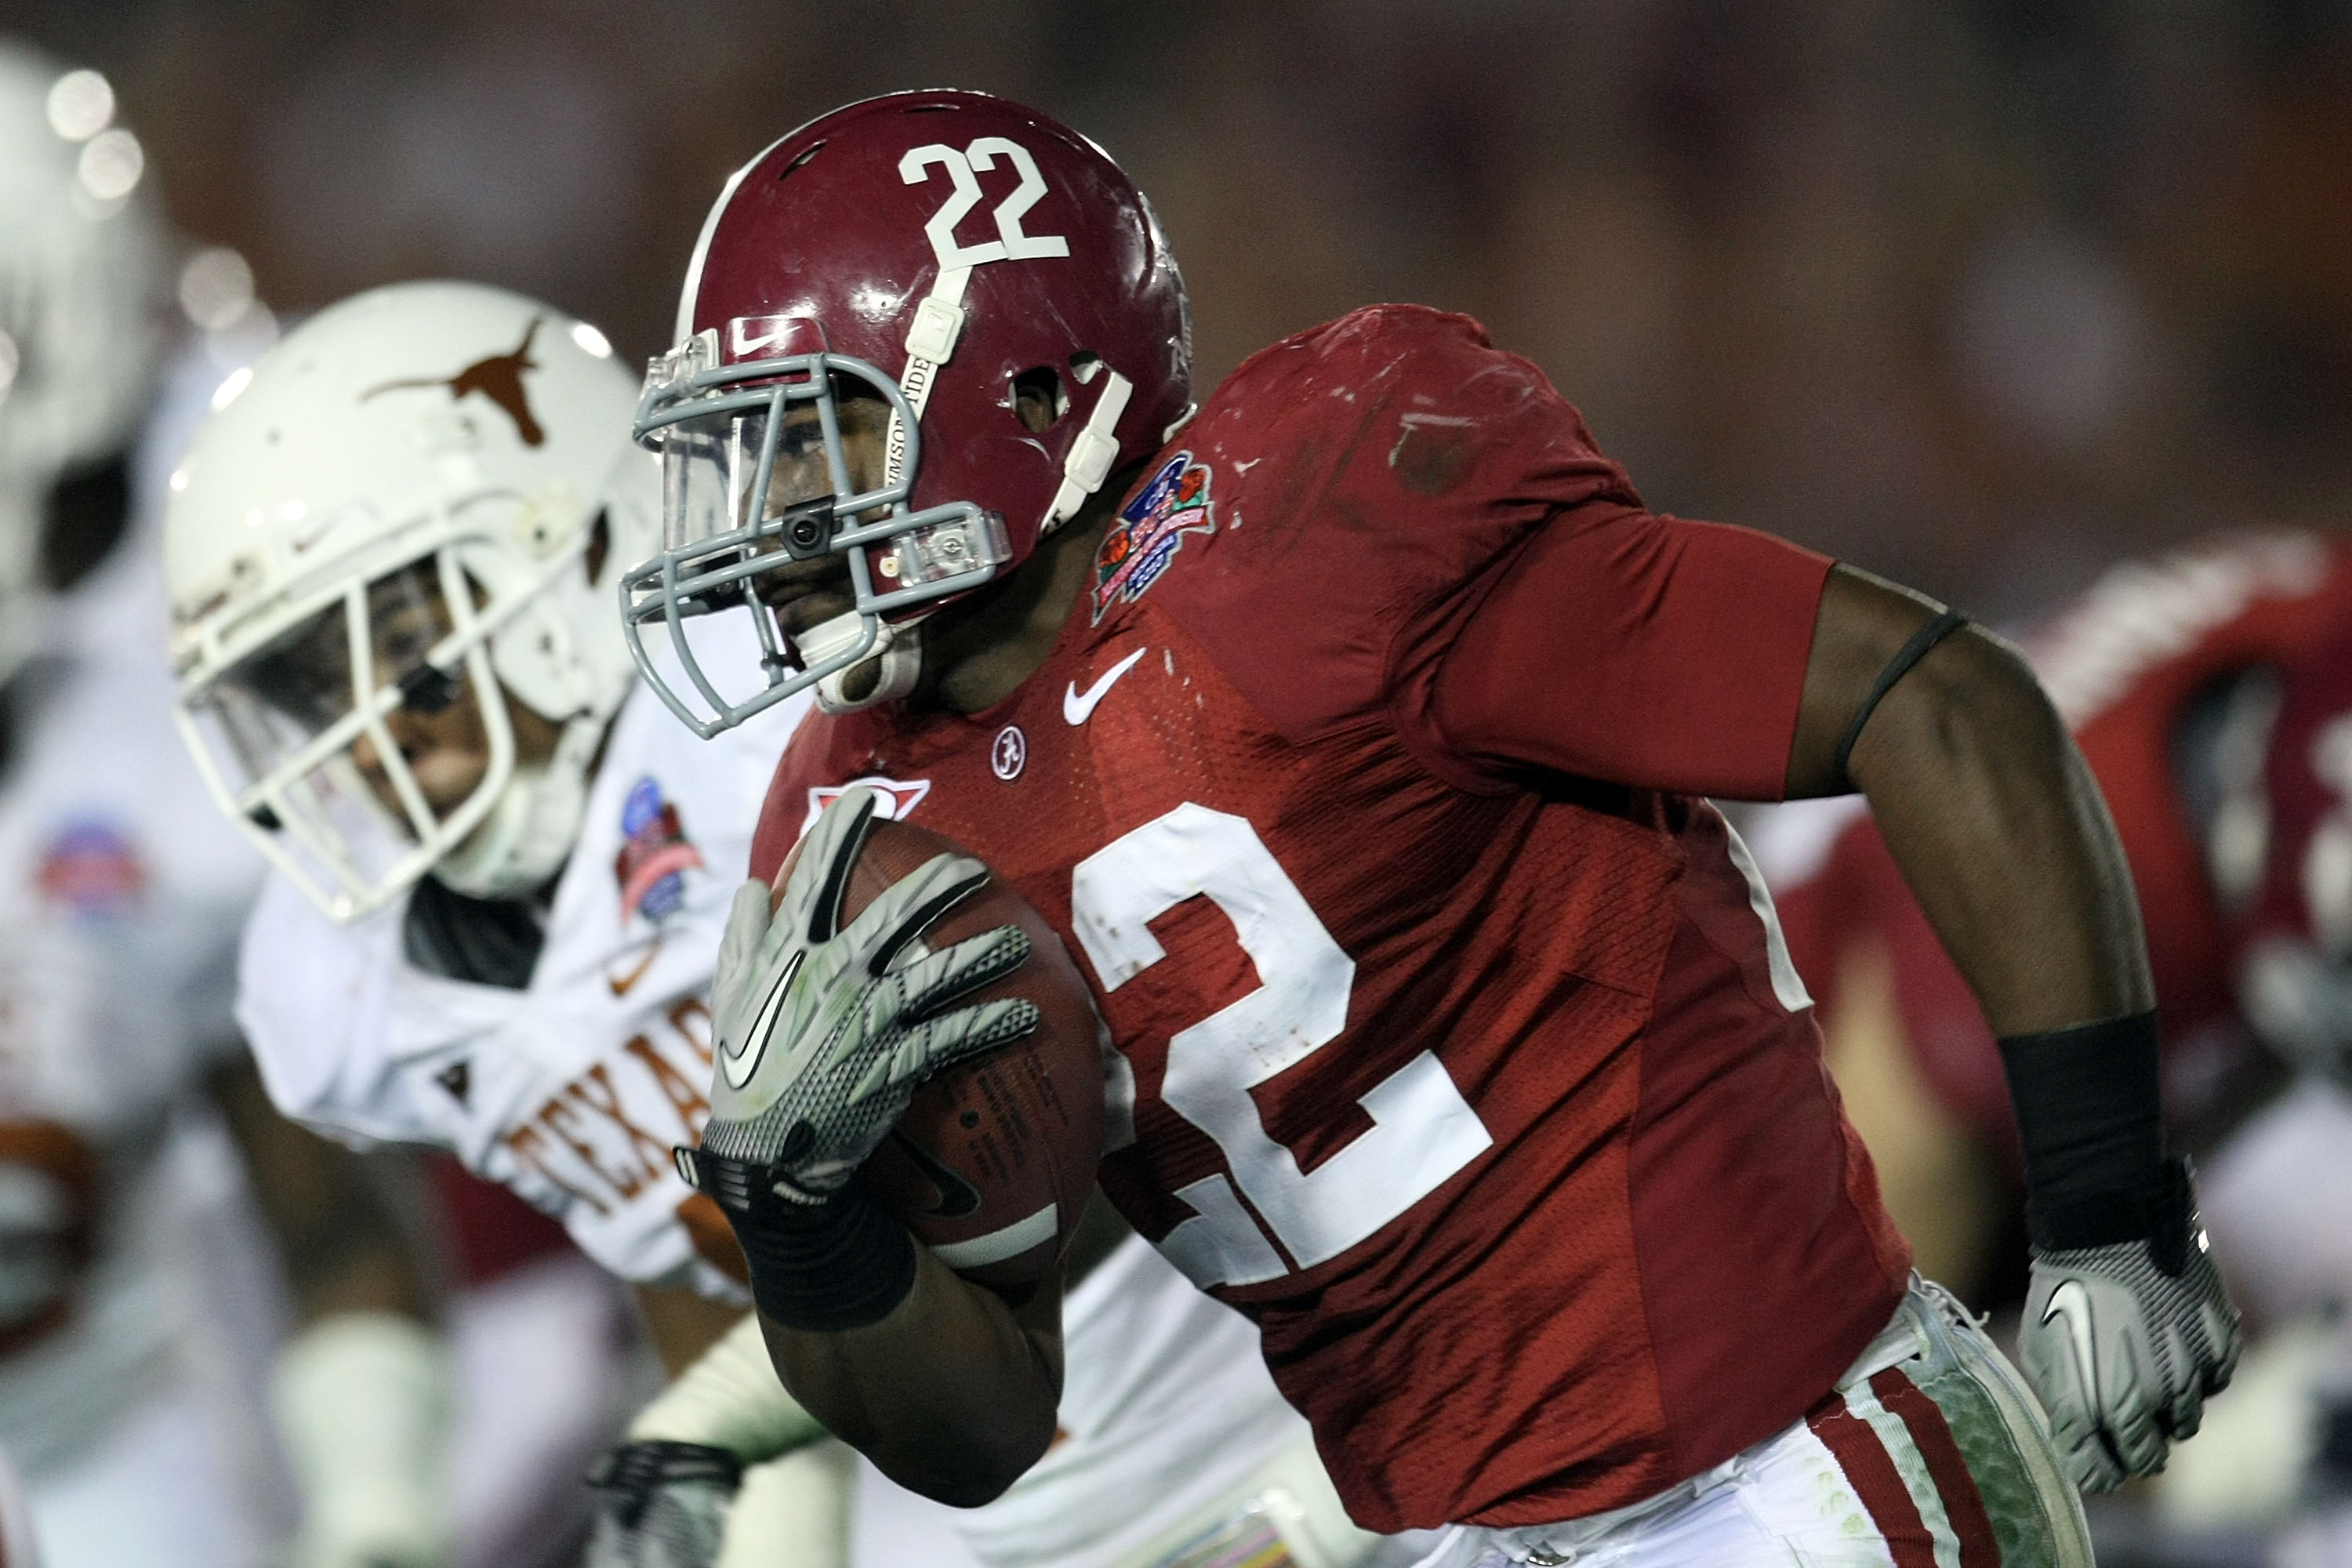 PASADENA, CA - JANUARY 07:  Running back Mark Ingram #22 of the Alabama Crimson Tide runs with the ball against the Texas Longhorns during the Citi BCS National Championship game at the Rose Bowl on January 7, 2010 in Pasadena, California.  (Photo by Step